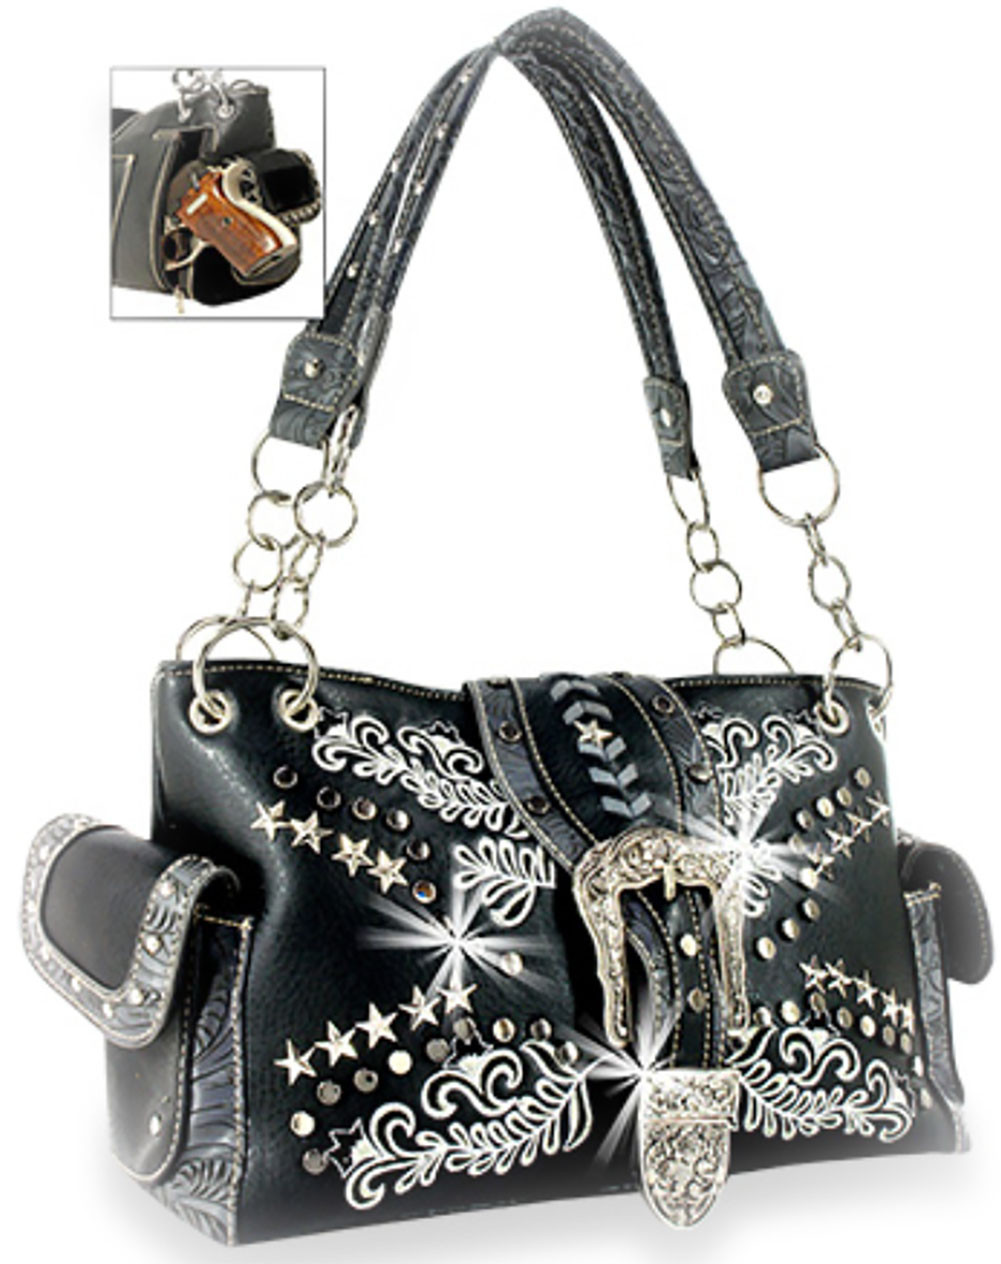 concealed and carry Cross handbag 891c9819cb88a